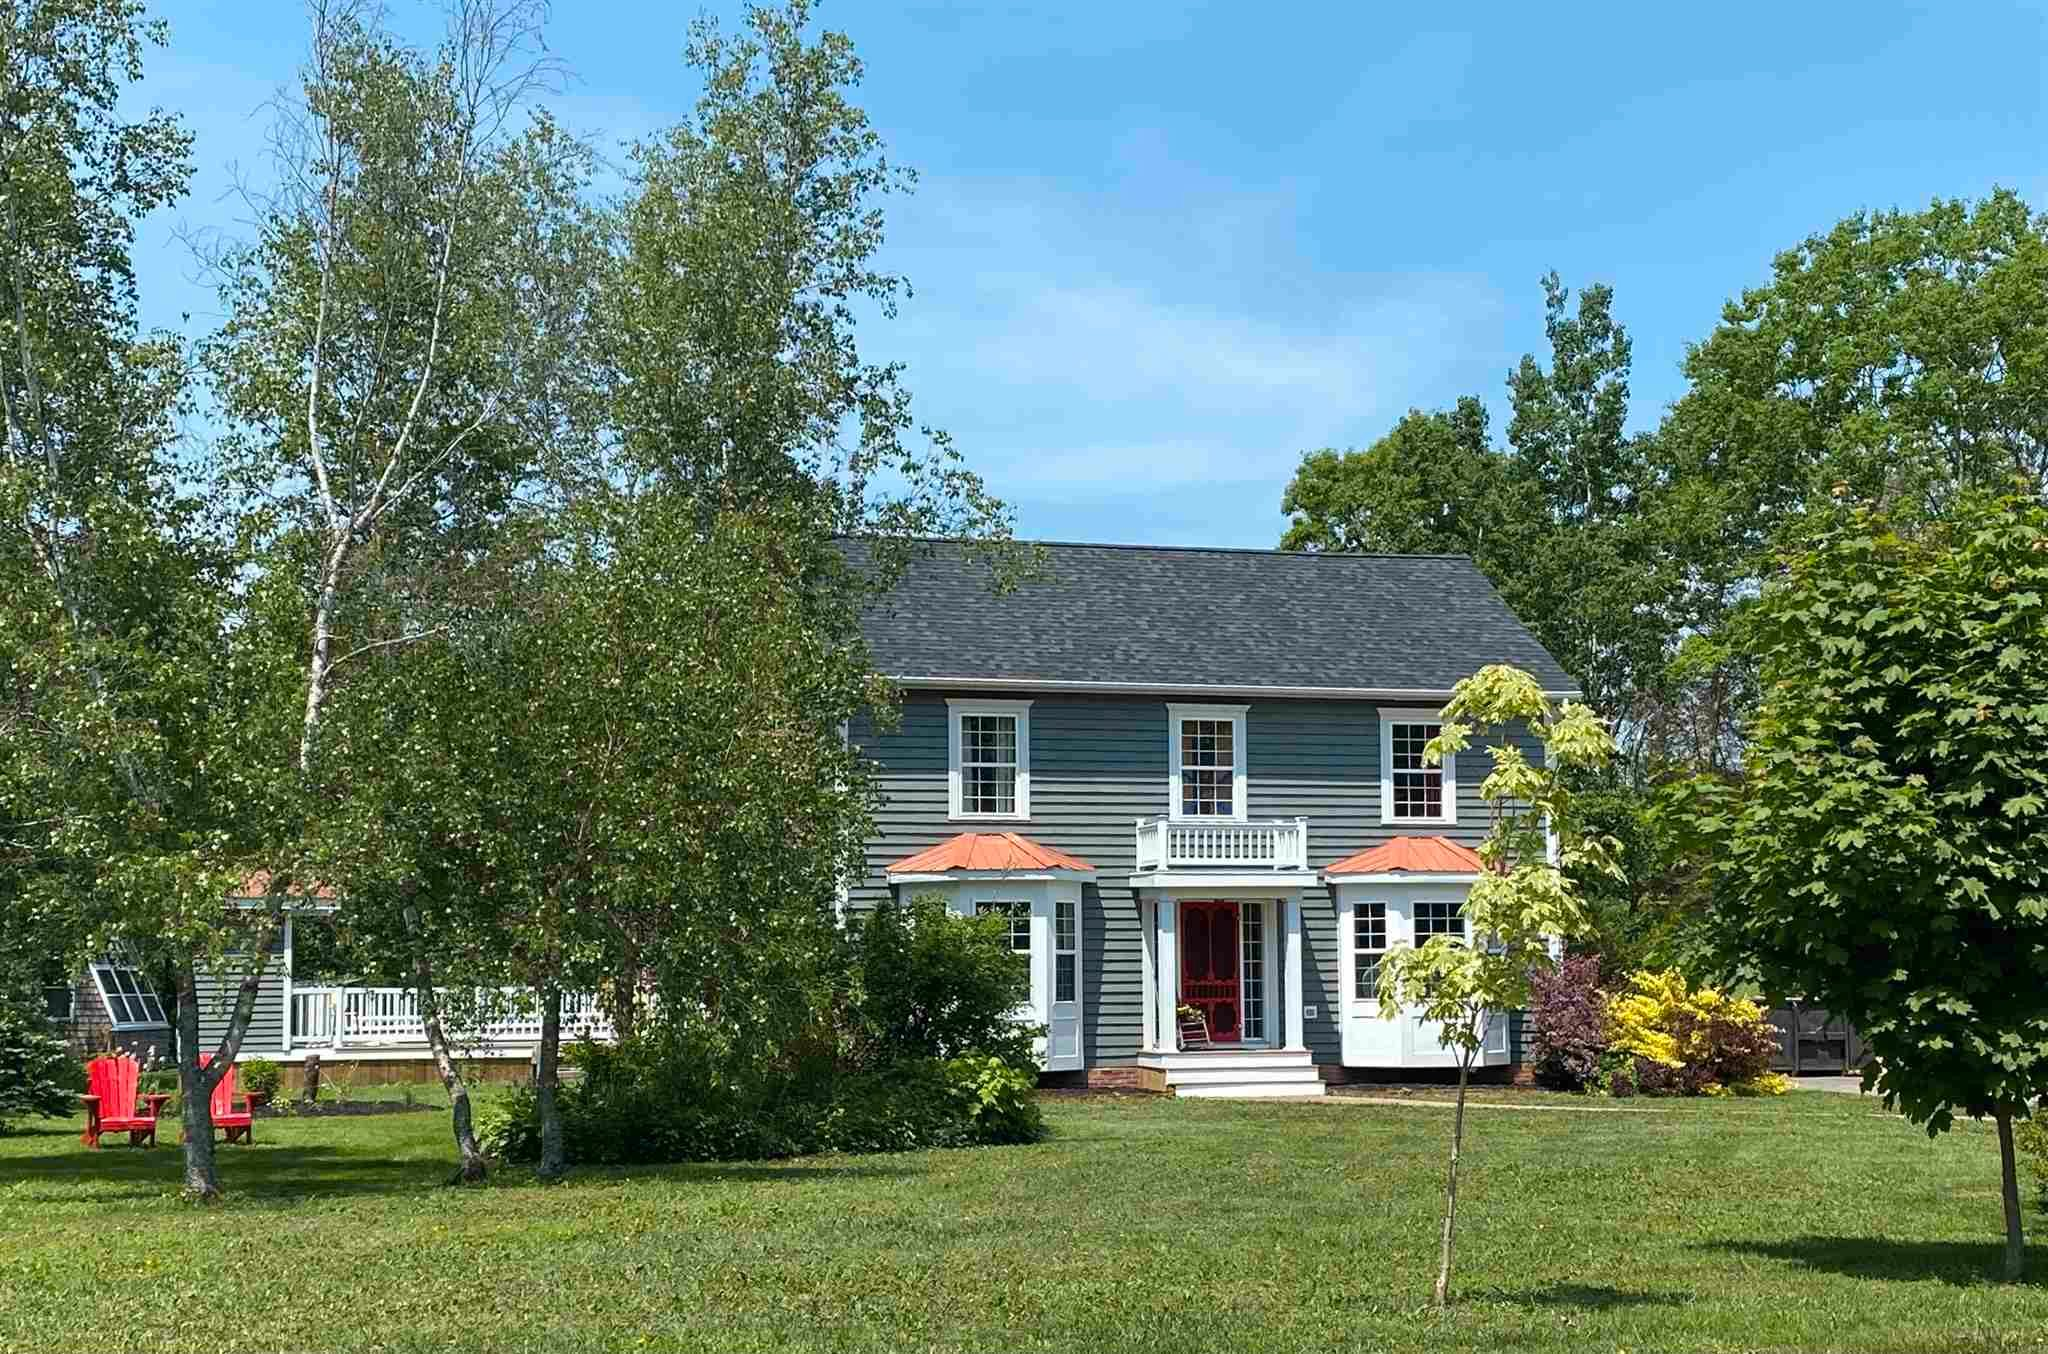 Main Photo: 14 N Forsythe Road in New Minas: 404-Kings County Residential for sale (Annapolis Valley)  : MLS®# 202116421